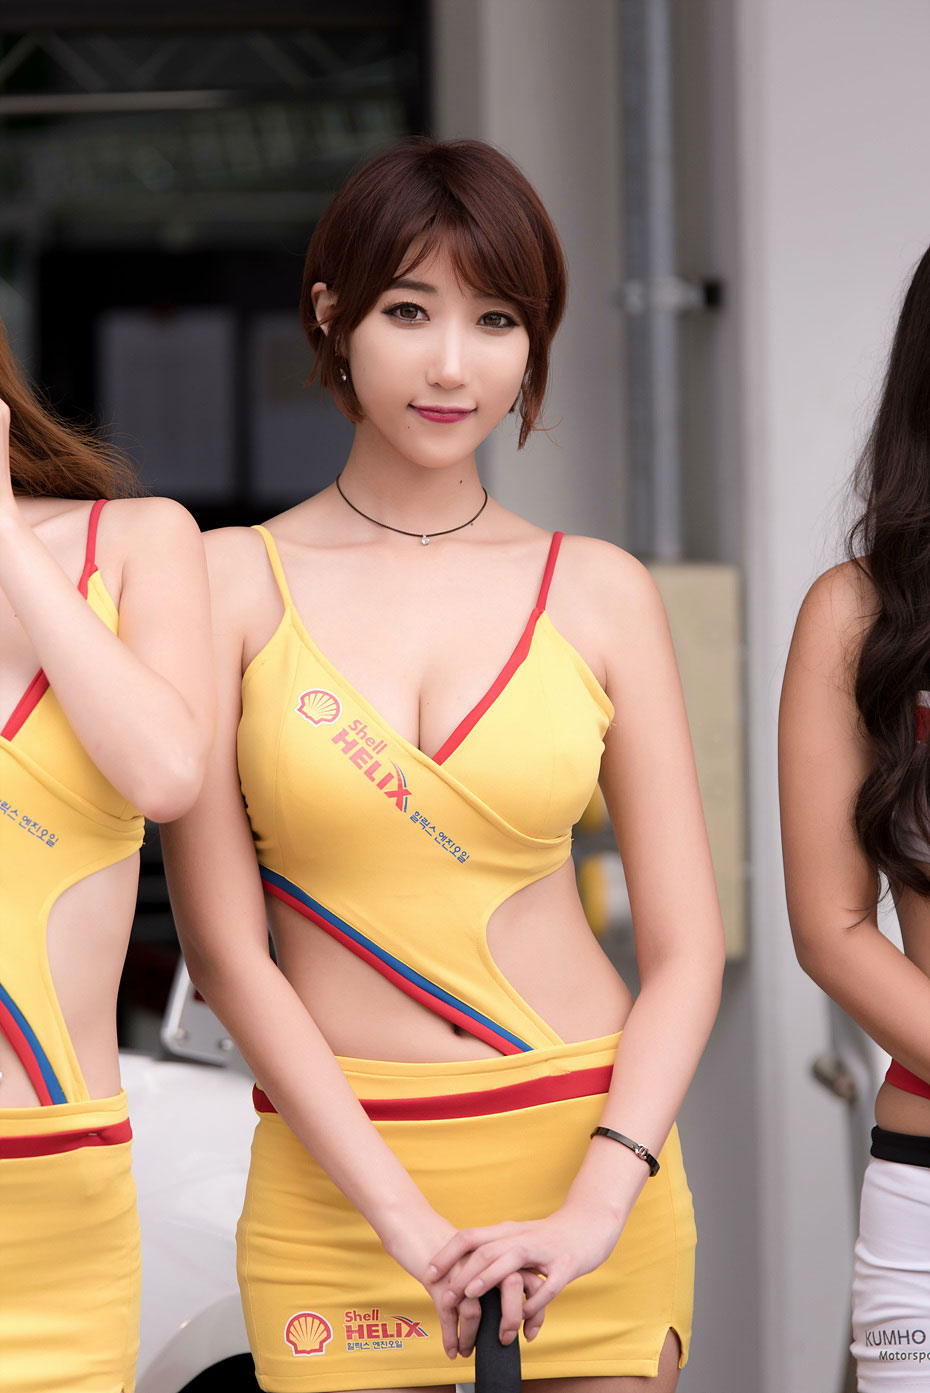 Yoo Ji Ah CJ Super Race 2015 Shell Helix